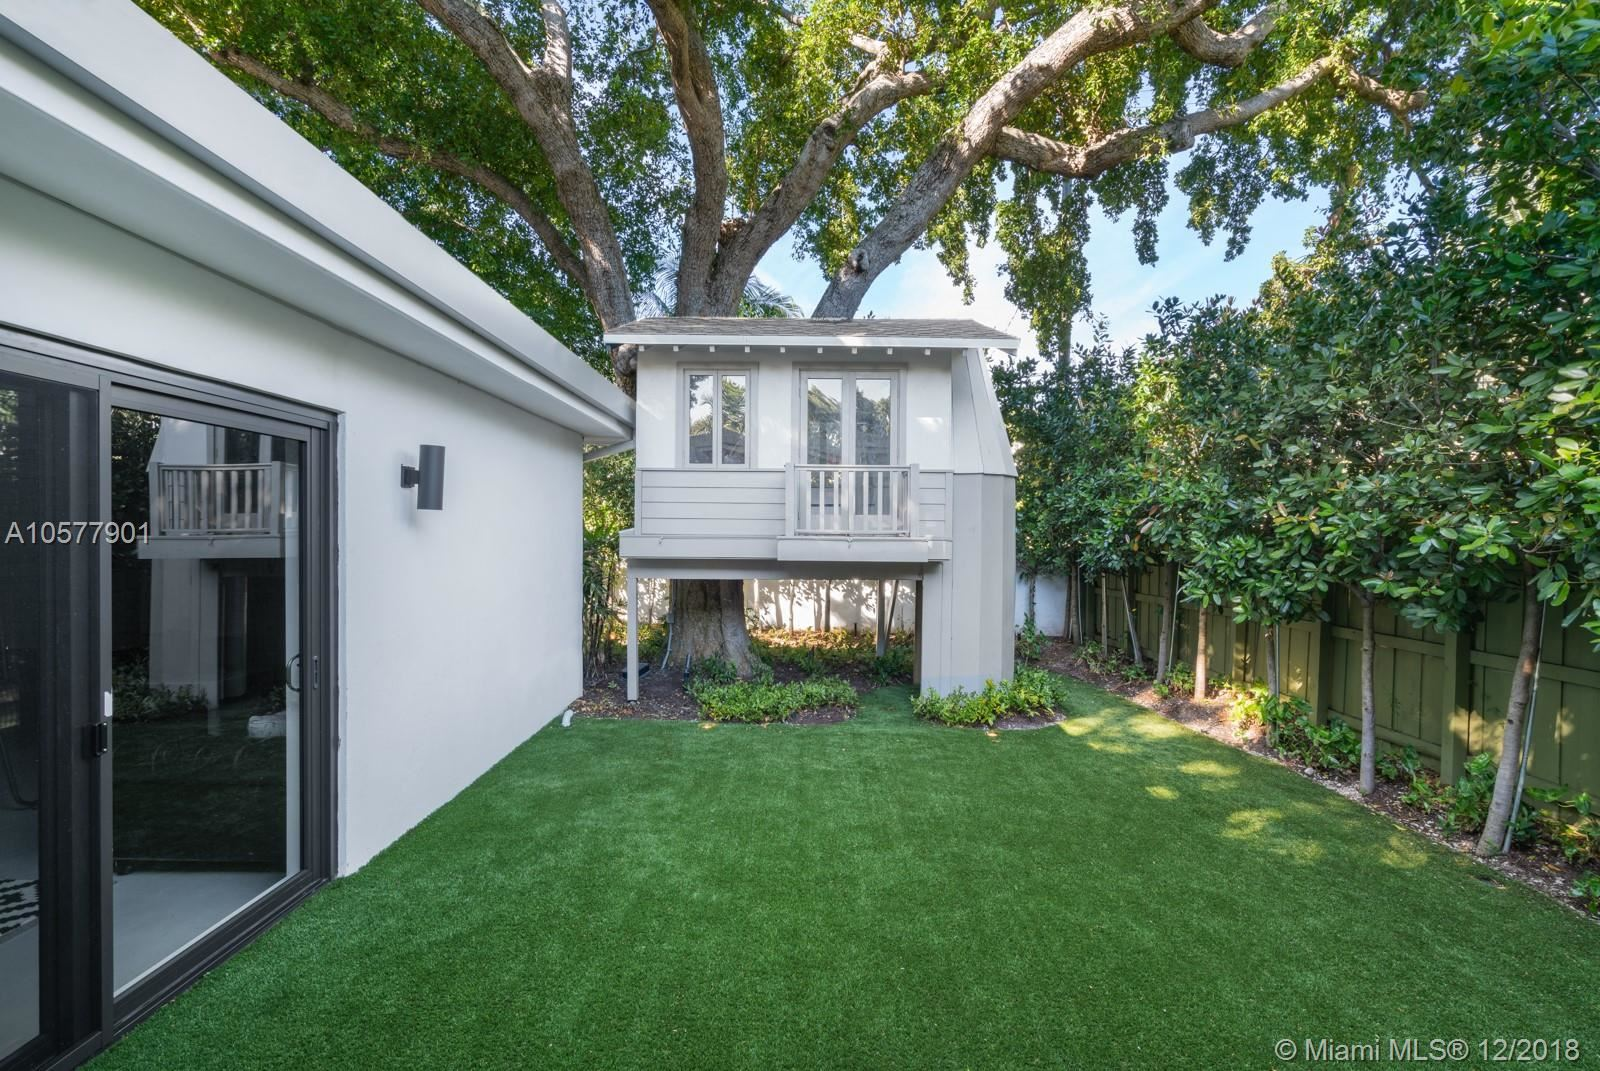 Photo 30 of Listing MLS a10577901 in 5045 Lakeview Drive Miami Beach FL 33140